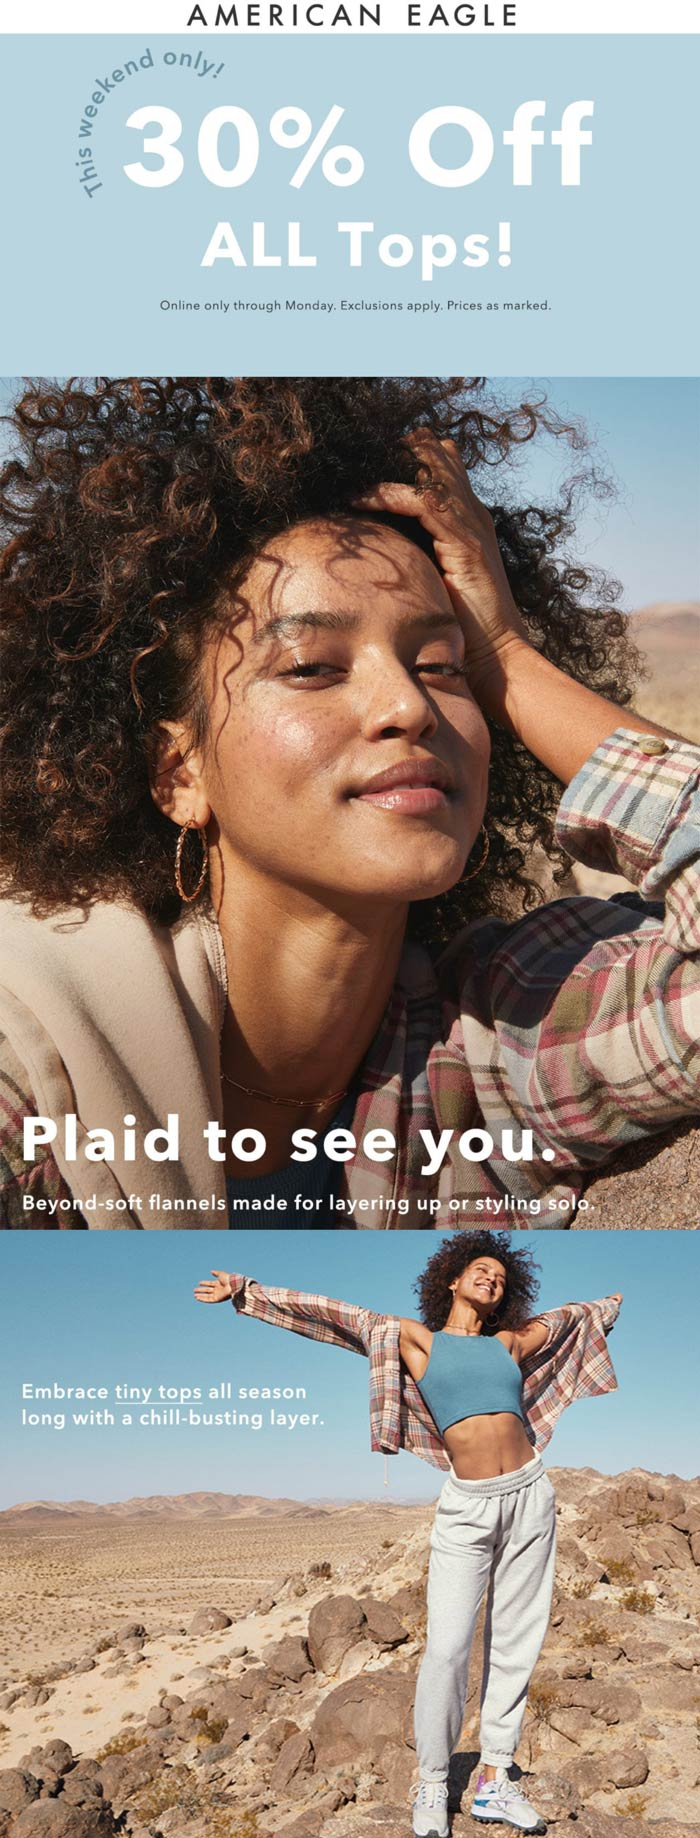 American Eagle stores Coupon  30% off all tops online at American Eagle #americaneagle